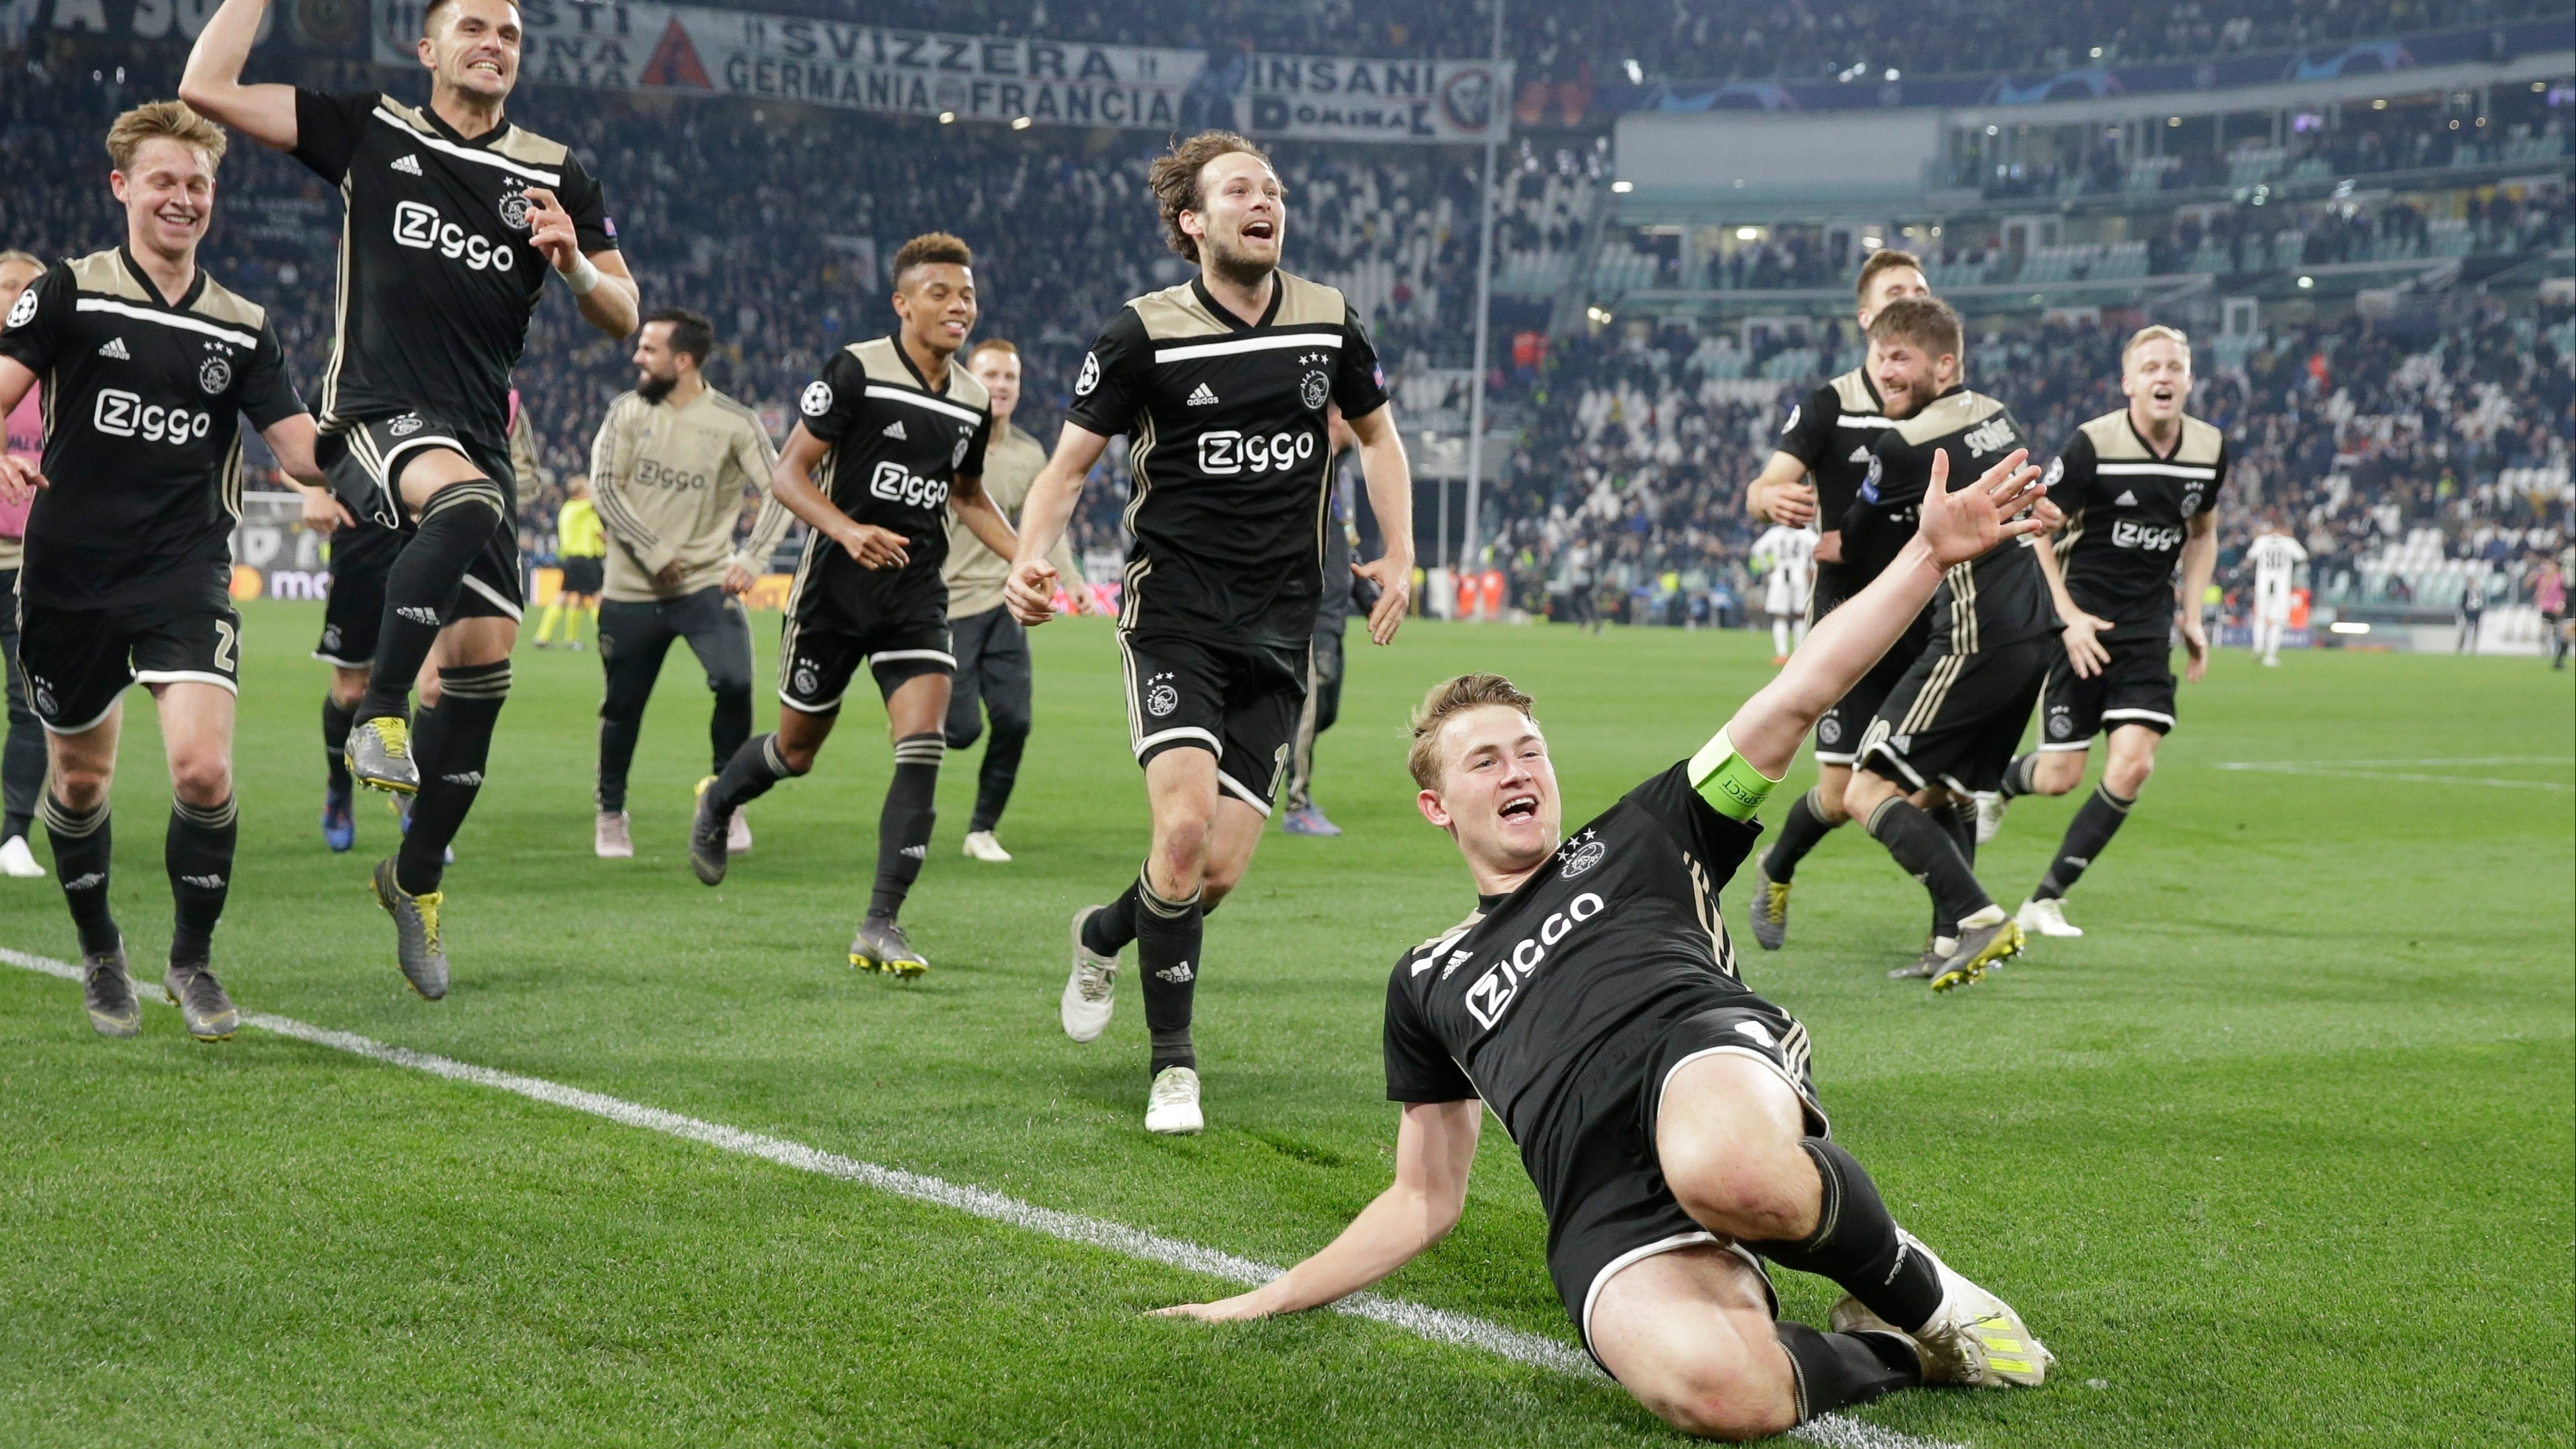 Ajax plays Tottenham in the semifinal tie of the Champions League